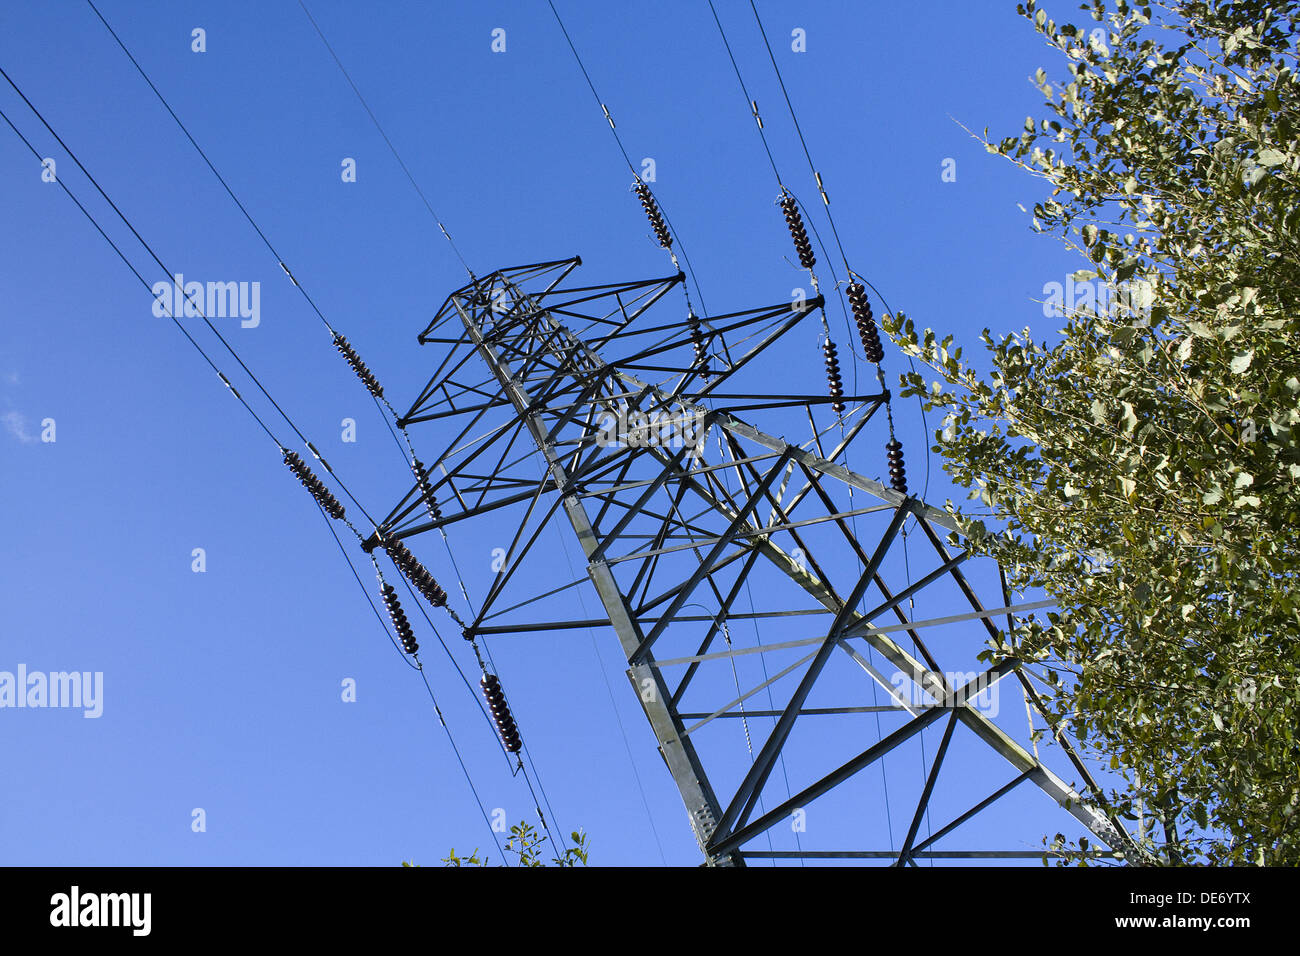 High Voltage Power Lines Along Stock Photos Amp High Voltage